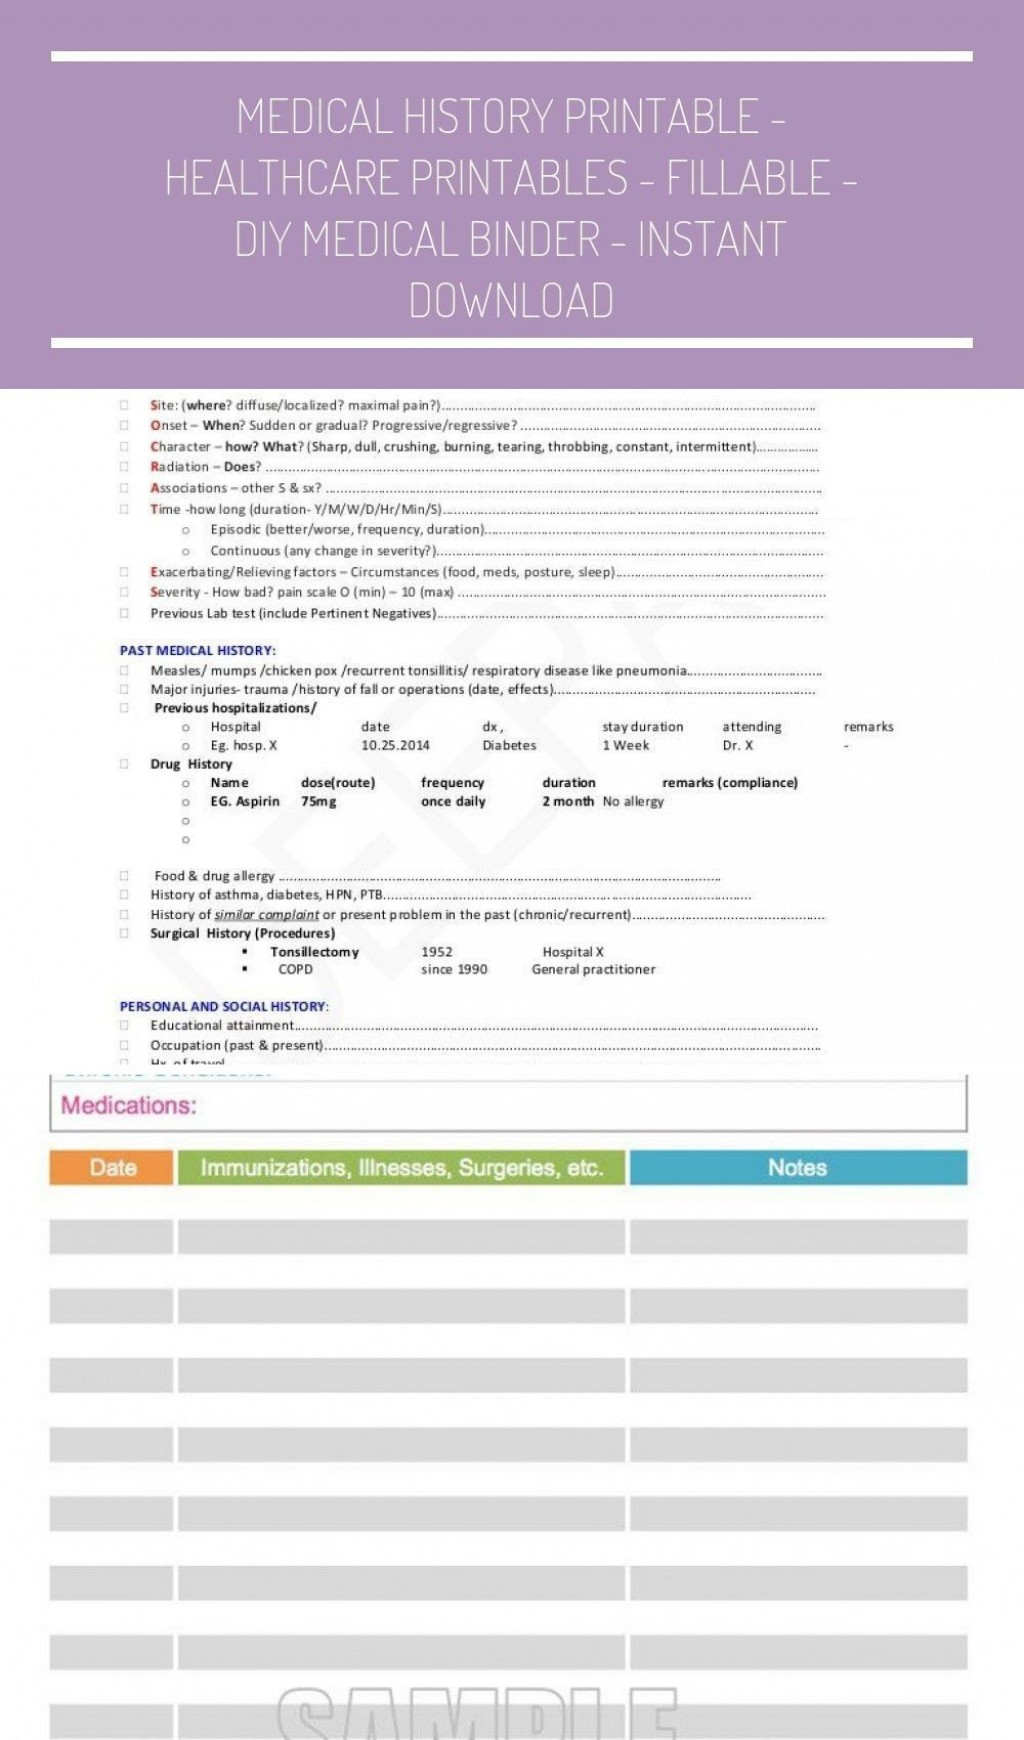 001 Marvelou Personal Medical History Template Download Inspiration Large